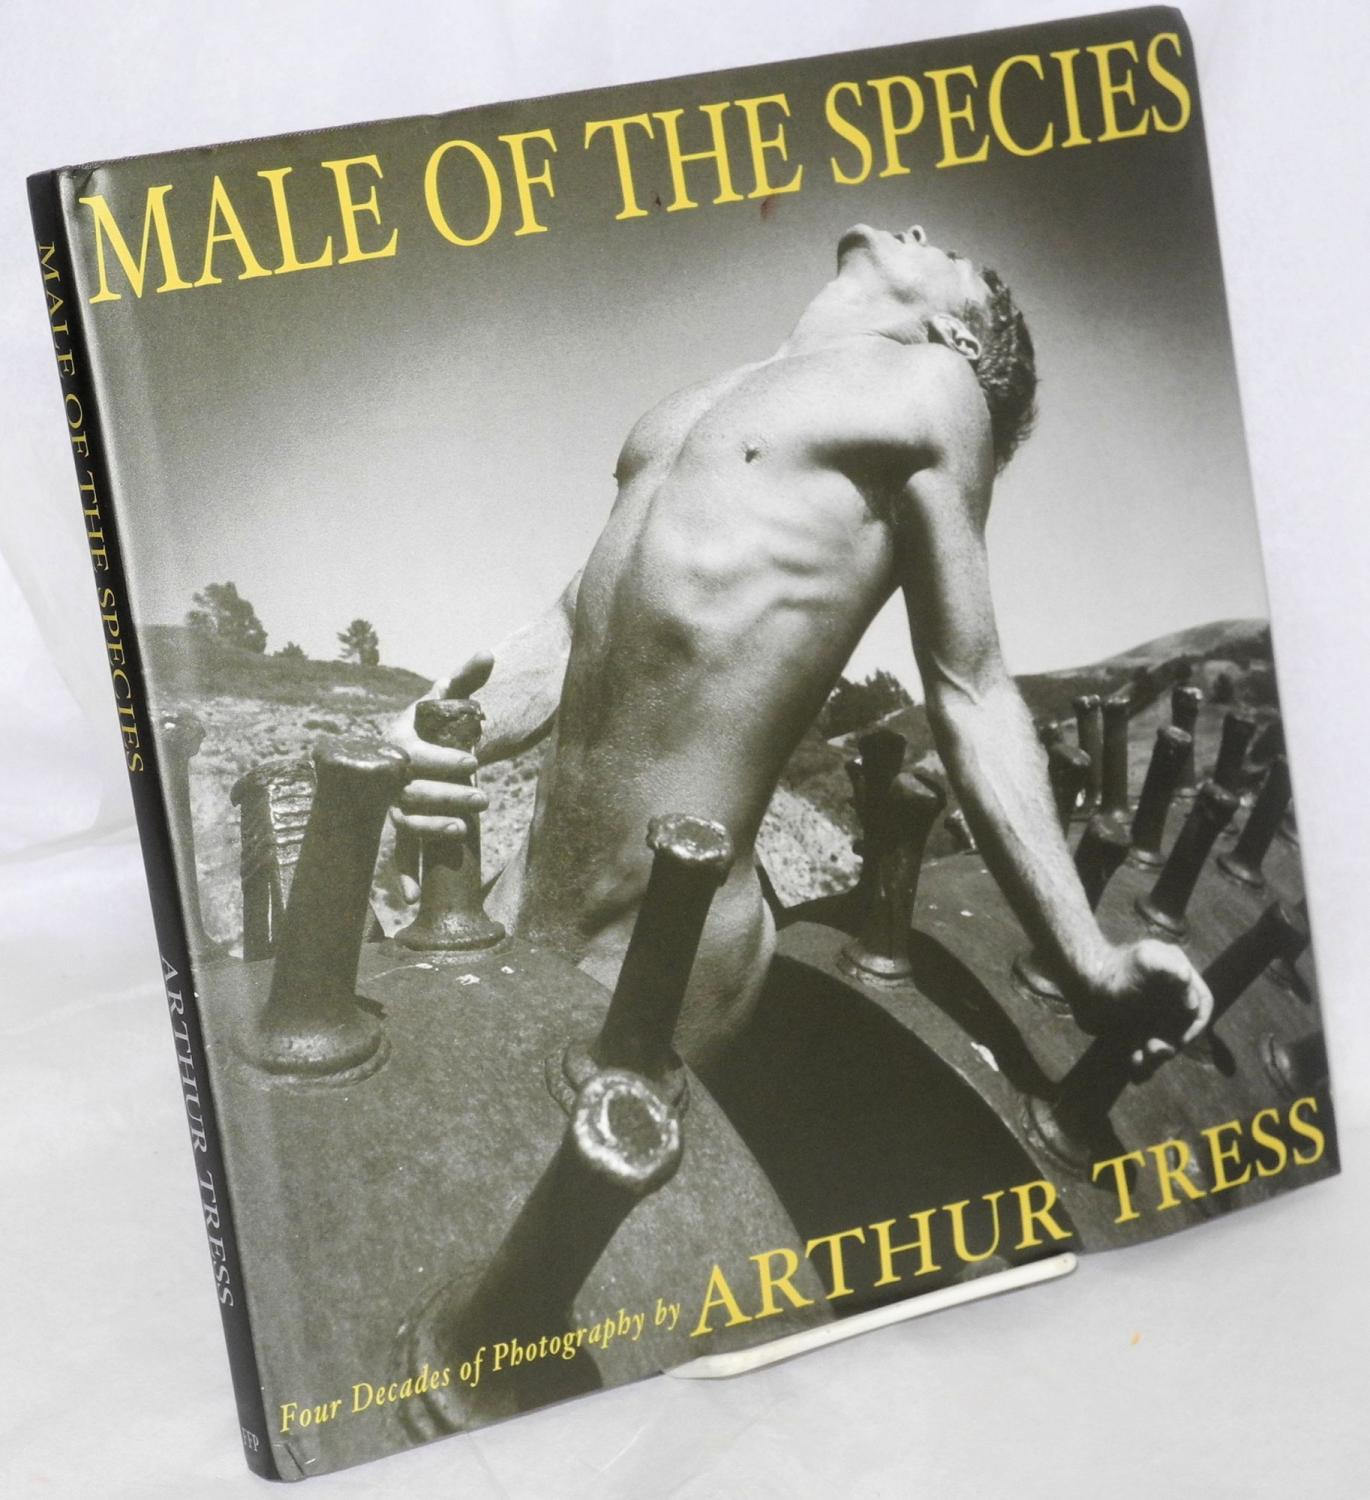 Male of the Species: Four Decades of Photography by Arthur Tress<br />Santa Monica. FotoFactory Press<br />1999